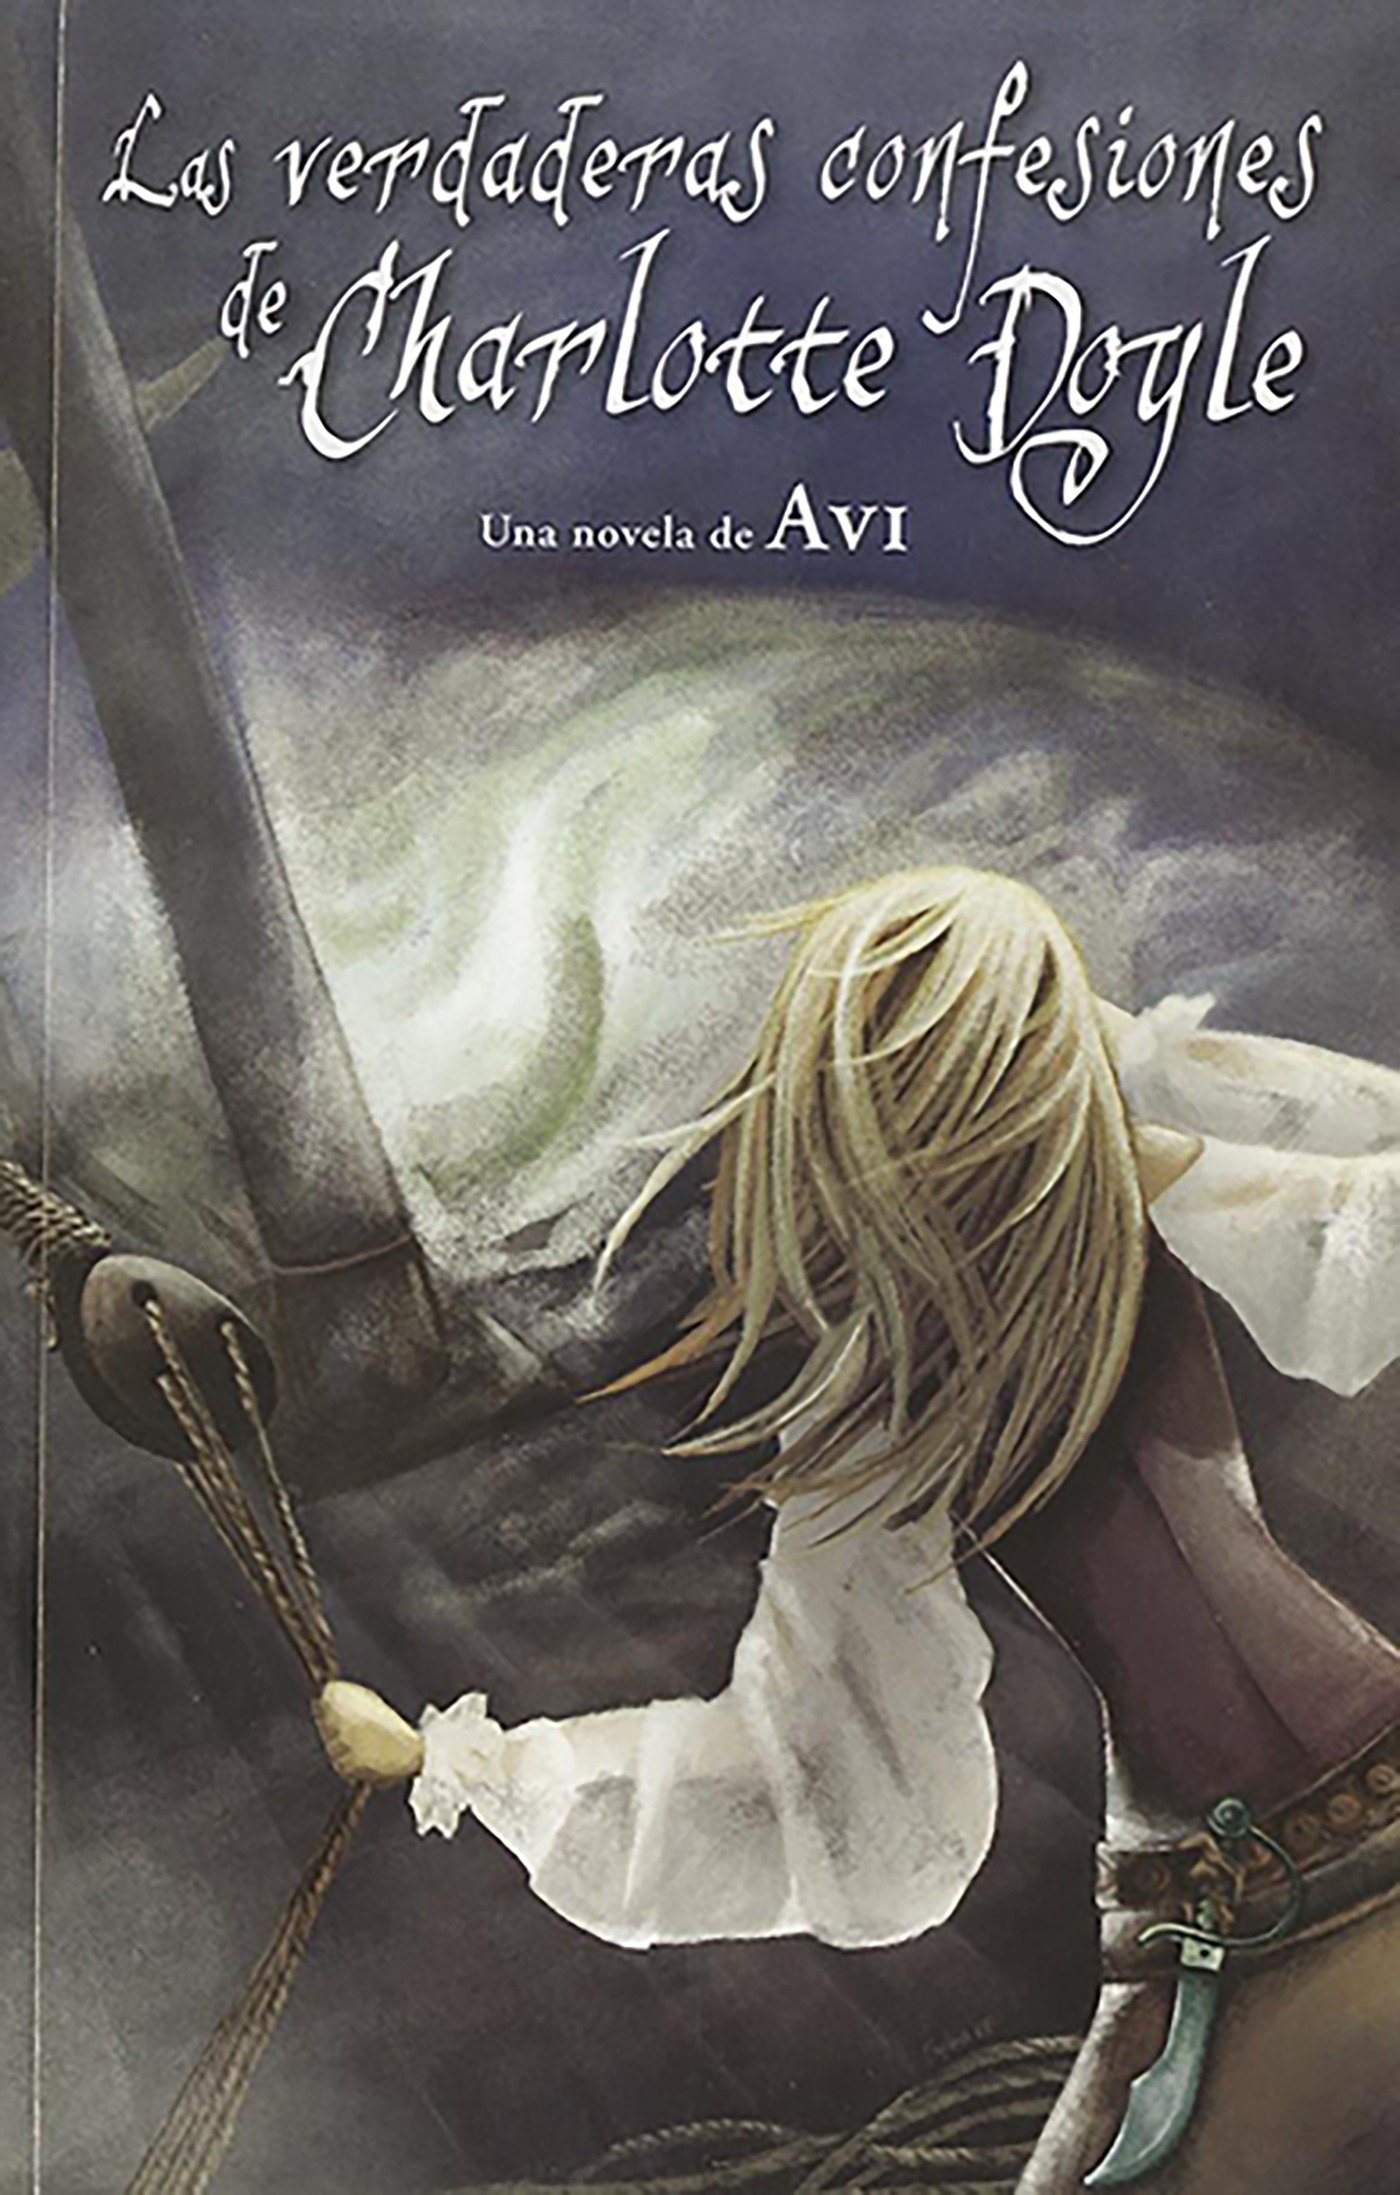 Amazon.com: Las verdaderas confesiones de Charlotte Doyle (Spanish Edition) (9788420423425): Avi: Books